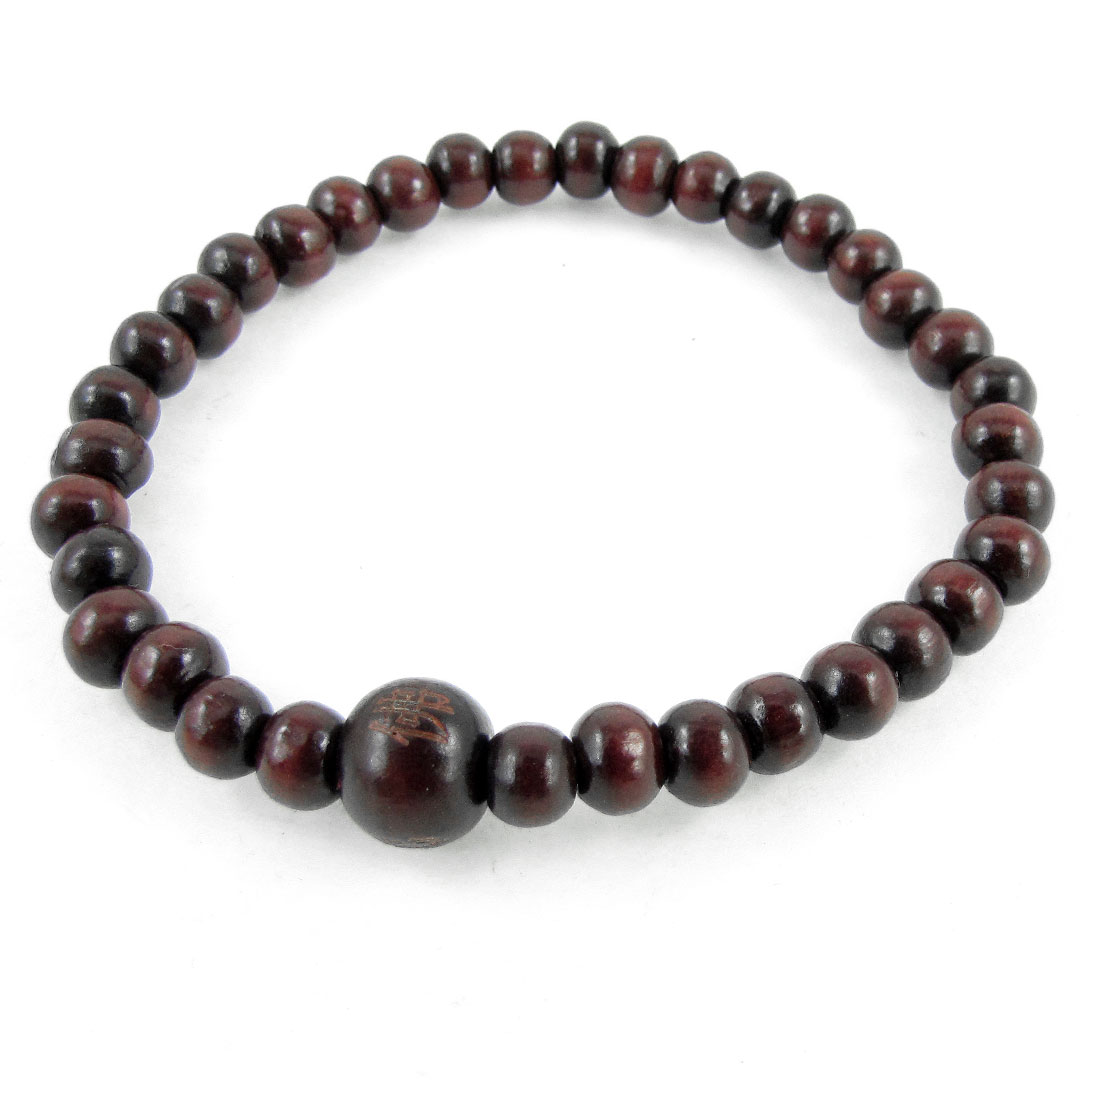 Burgundy Plastic Round Buddha Beads Elastic Hand Catenary Decoration